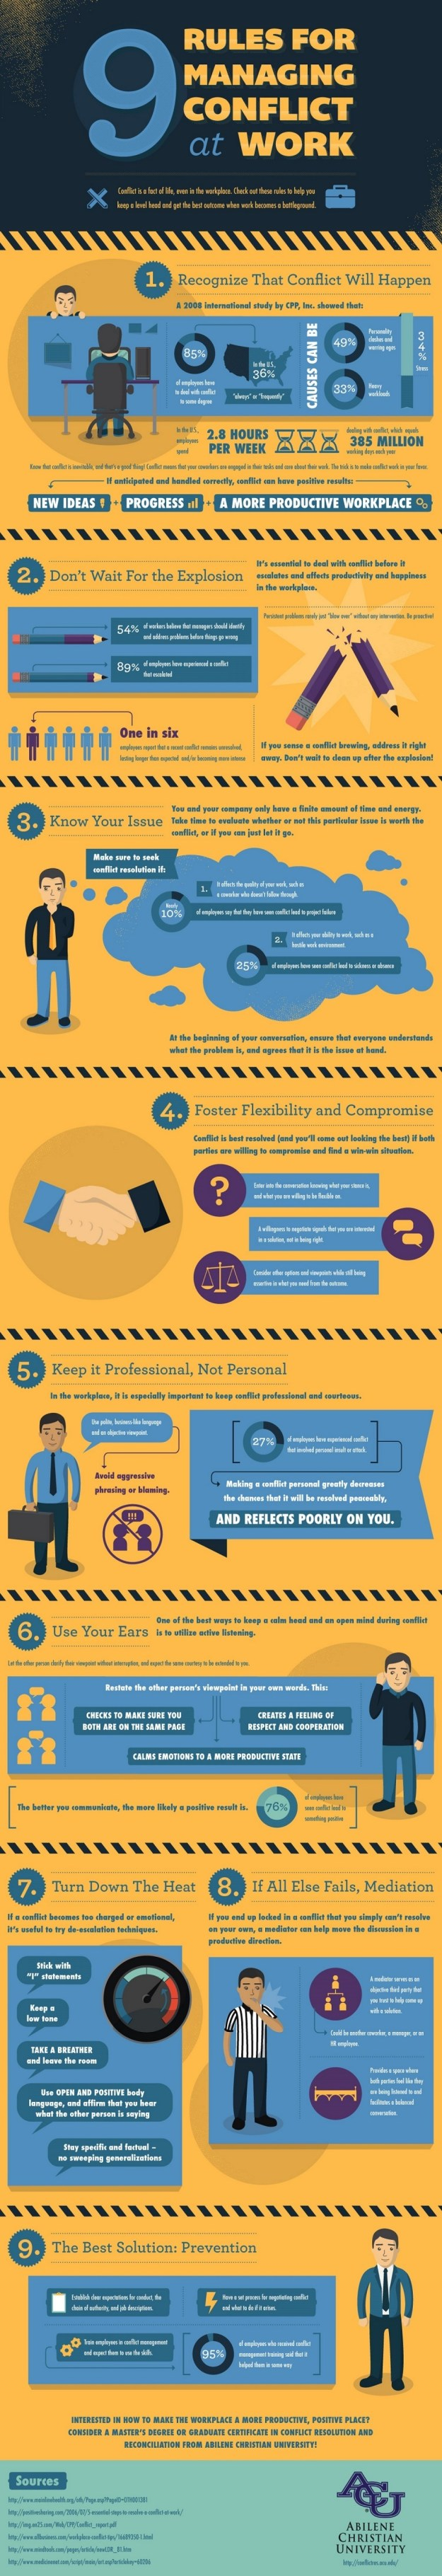 How to Manage Conflict at Work Infographic